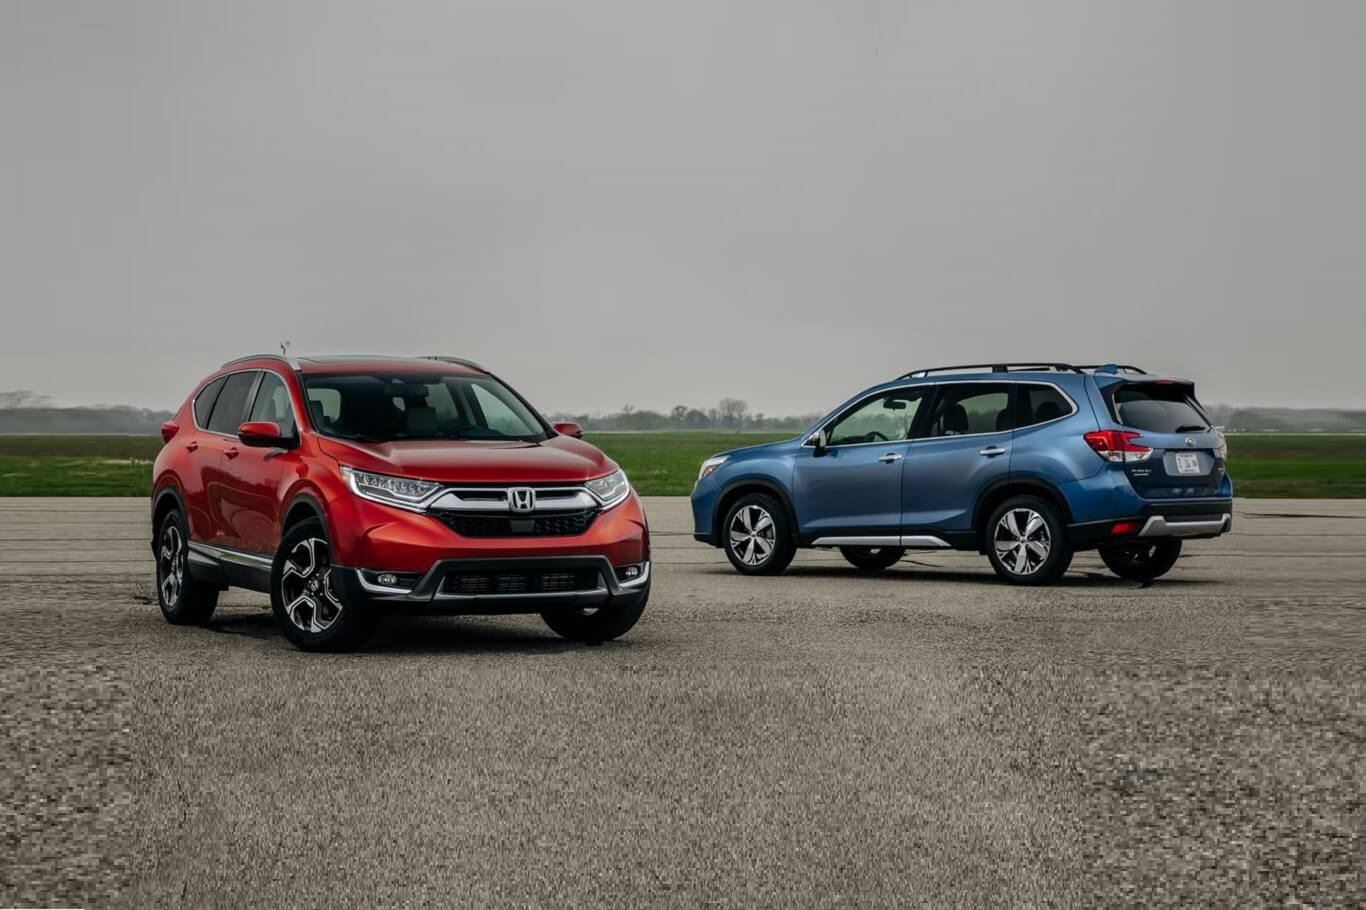 what is the difference between a honda crv and hrv